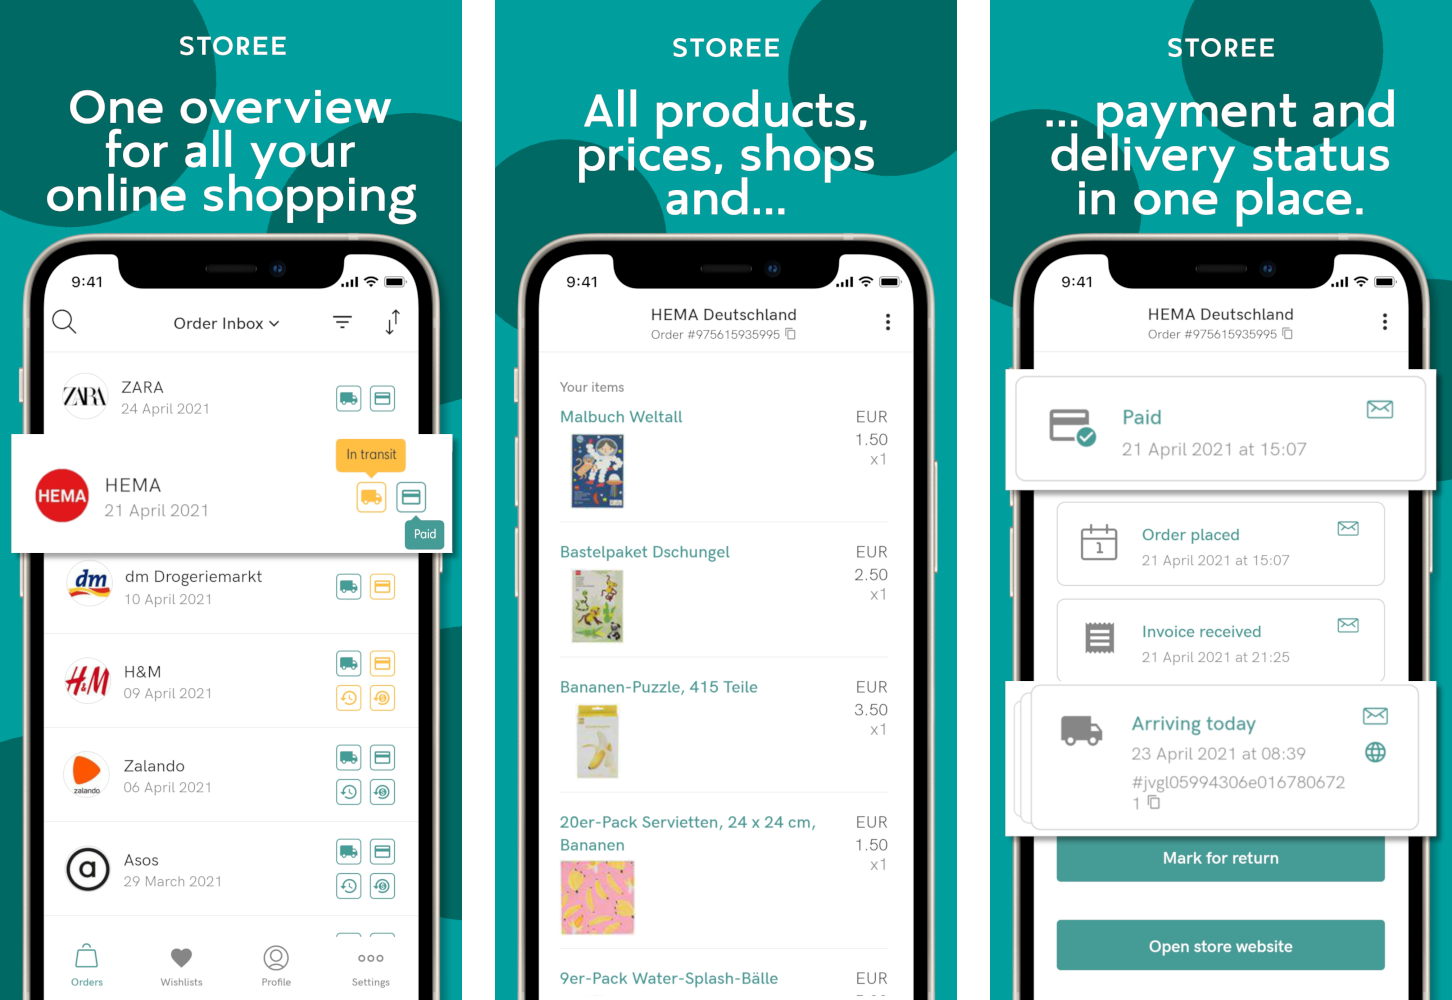 How STOREE helps online shoppers